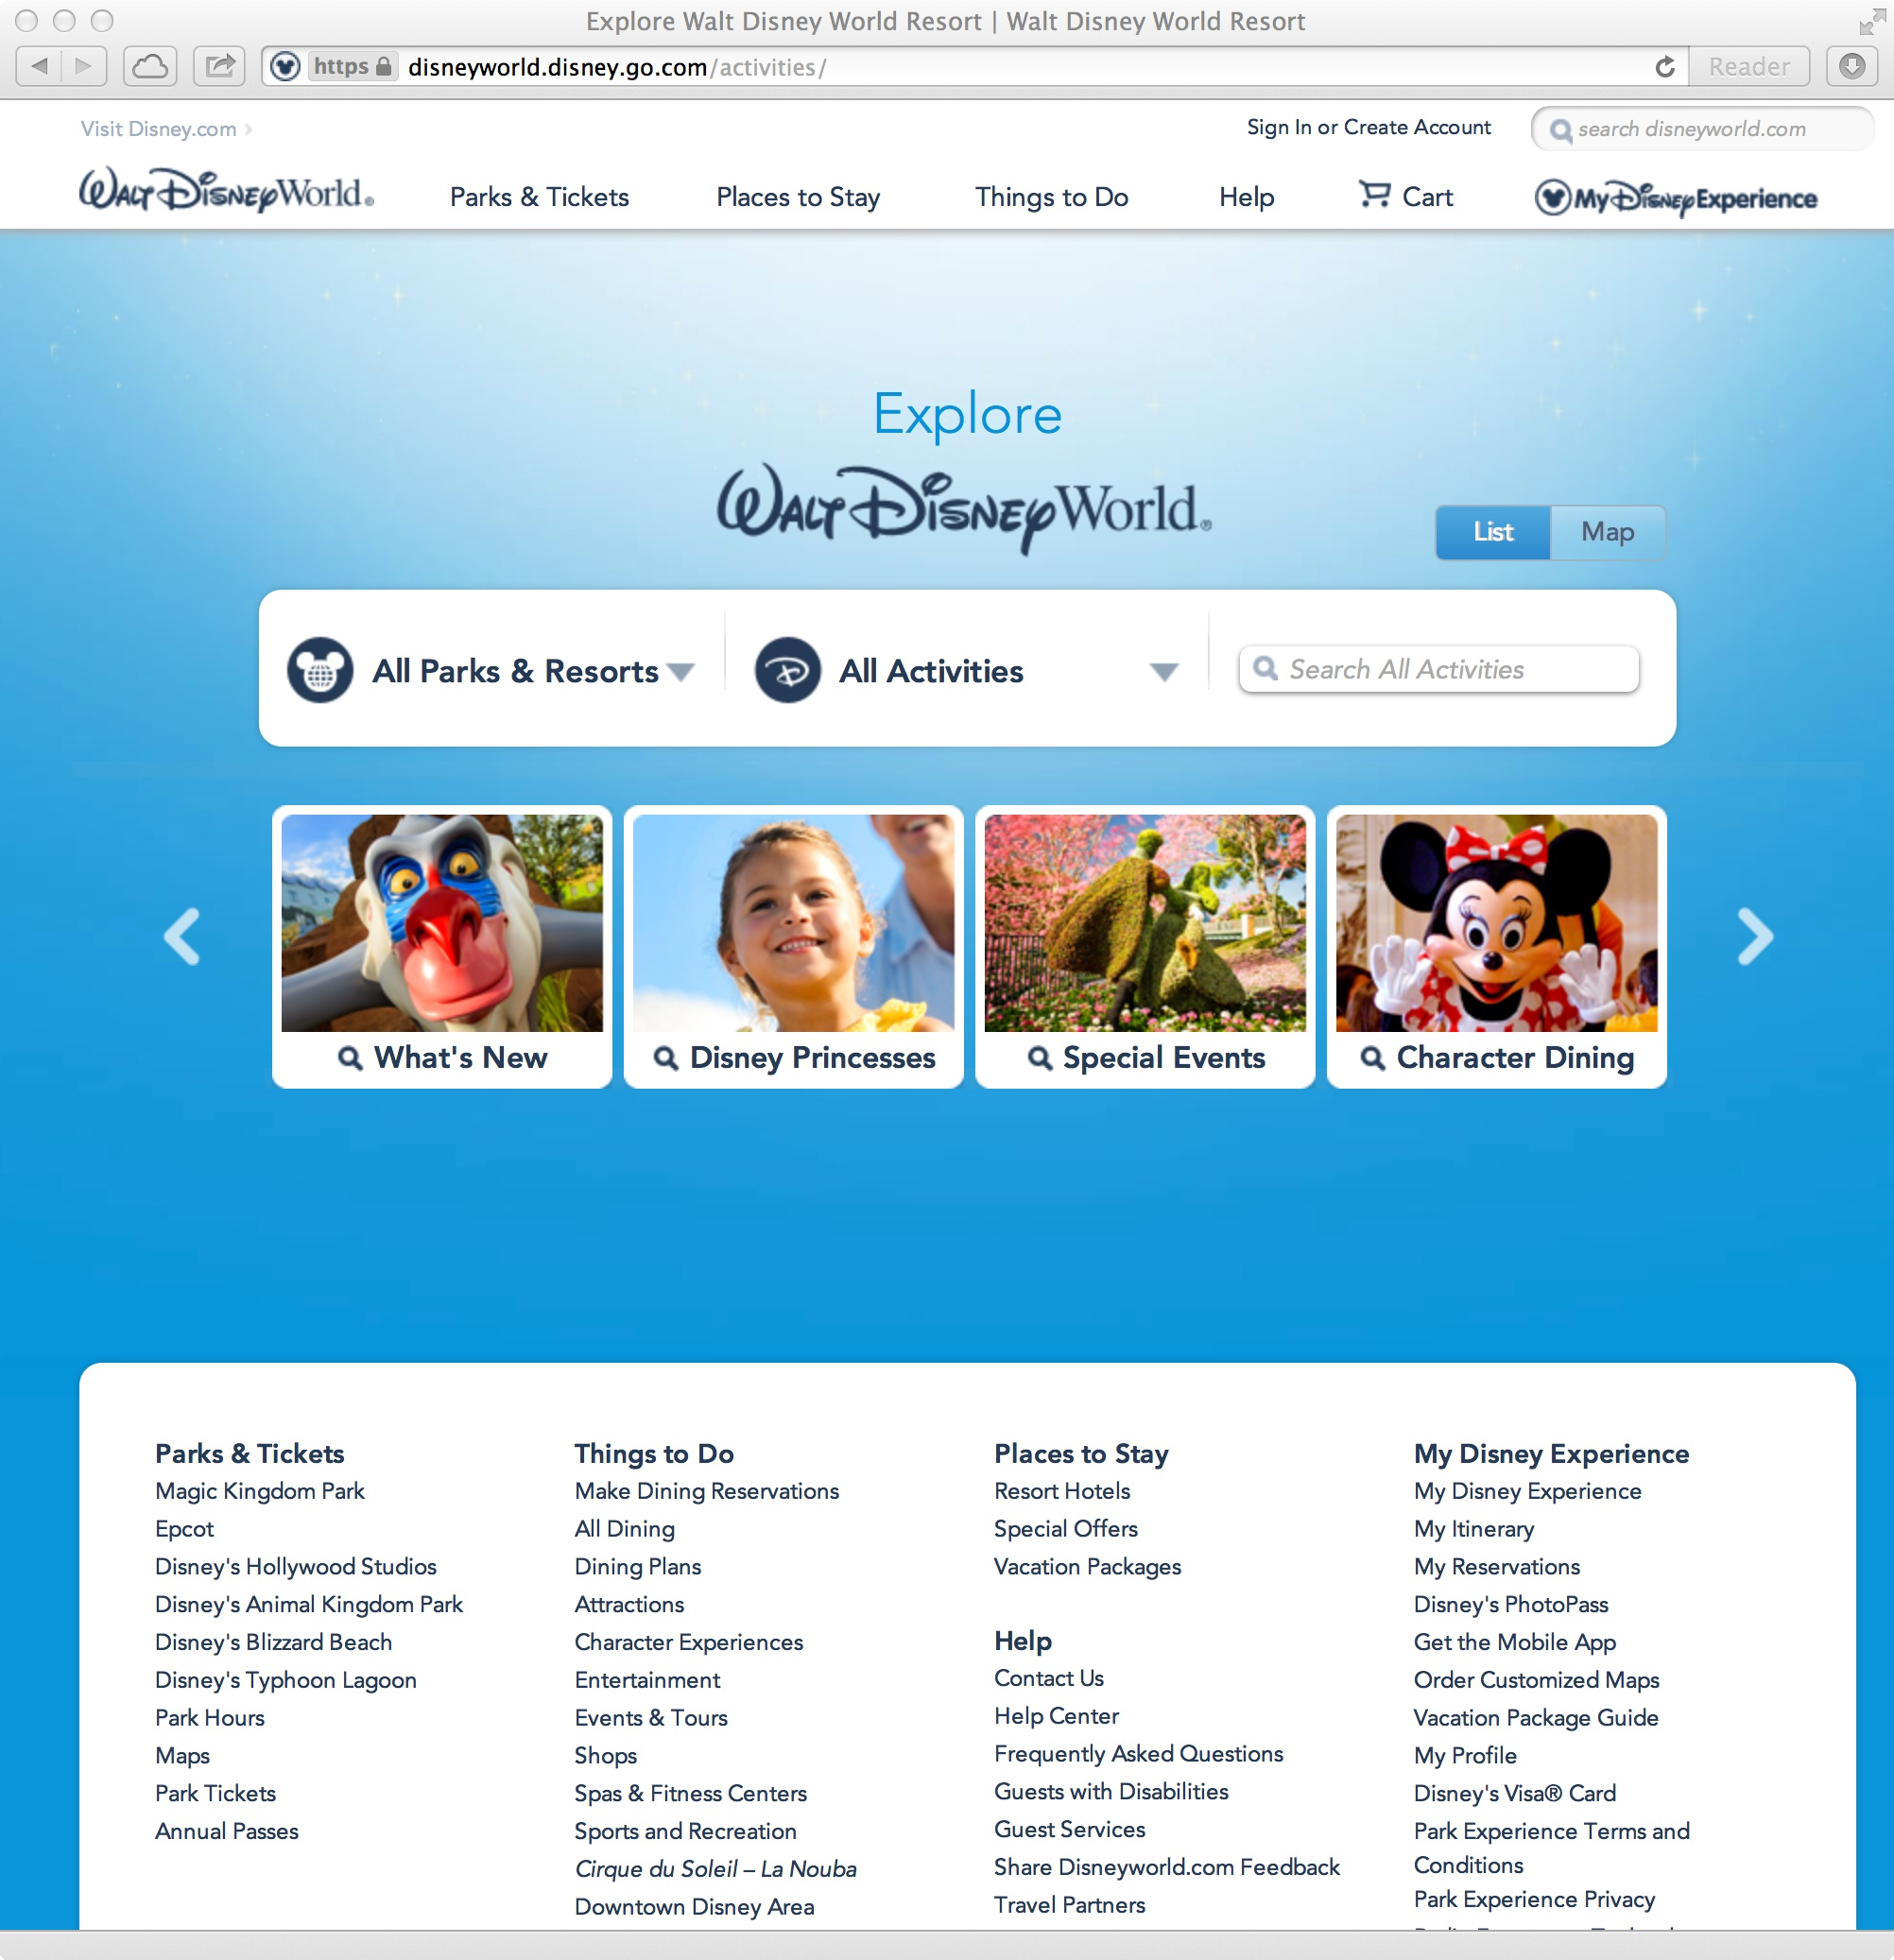 These Disney hotels are located in the heart of the Walt Disney World. Enjoy exclusive benefits and world class accommodations. To book reservations call